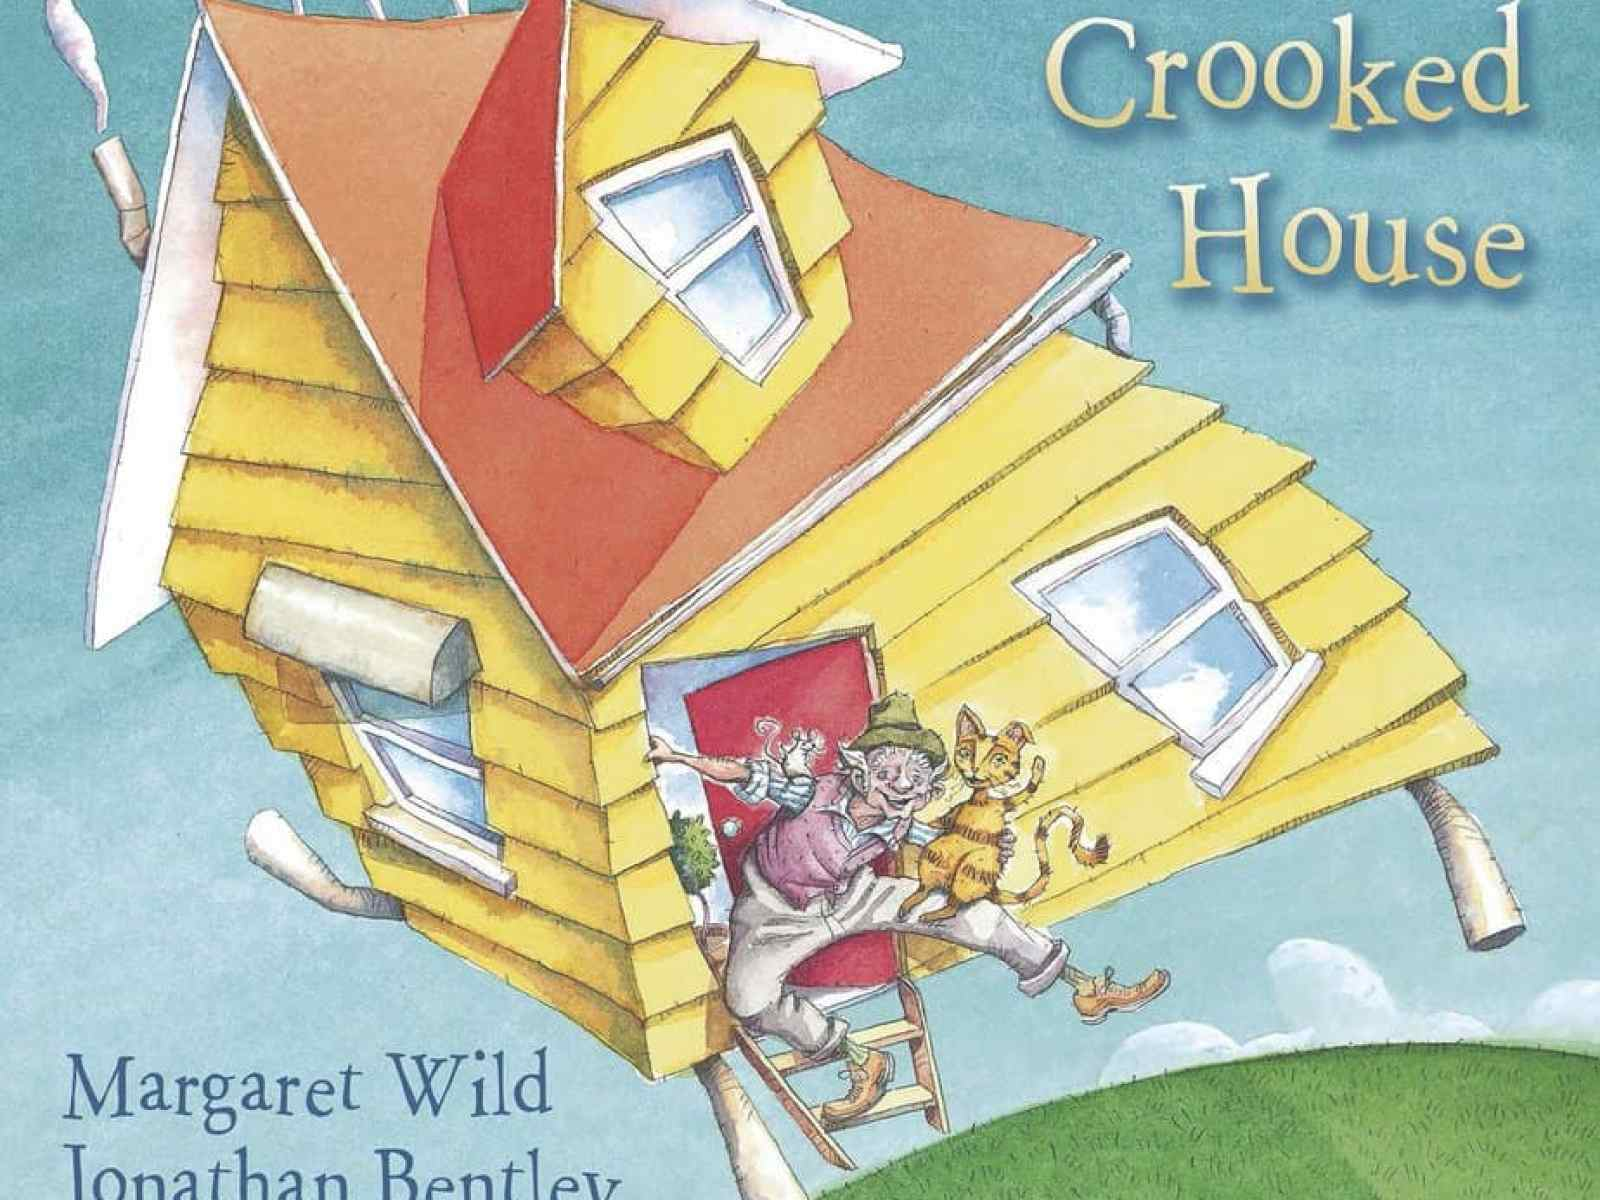 The Little Crooked House by Margaret Wild and Jonathan Bentley